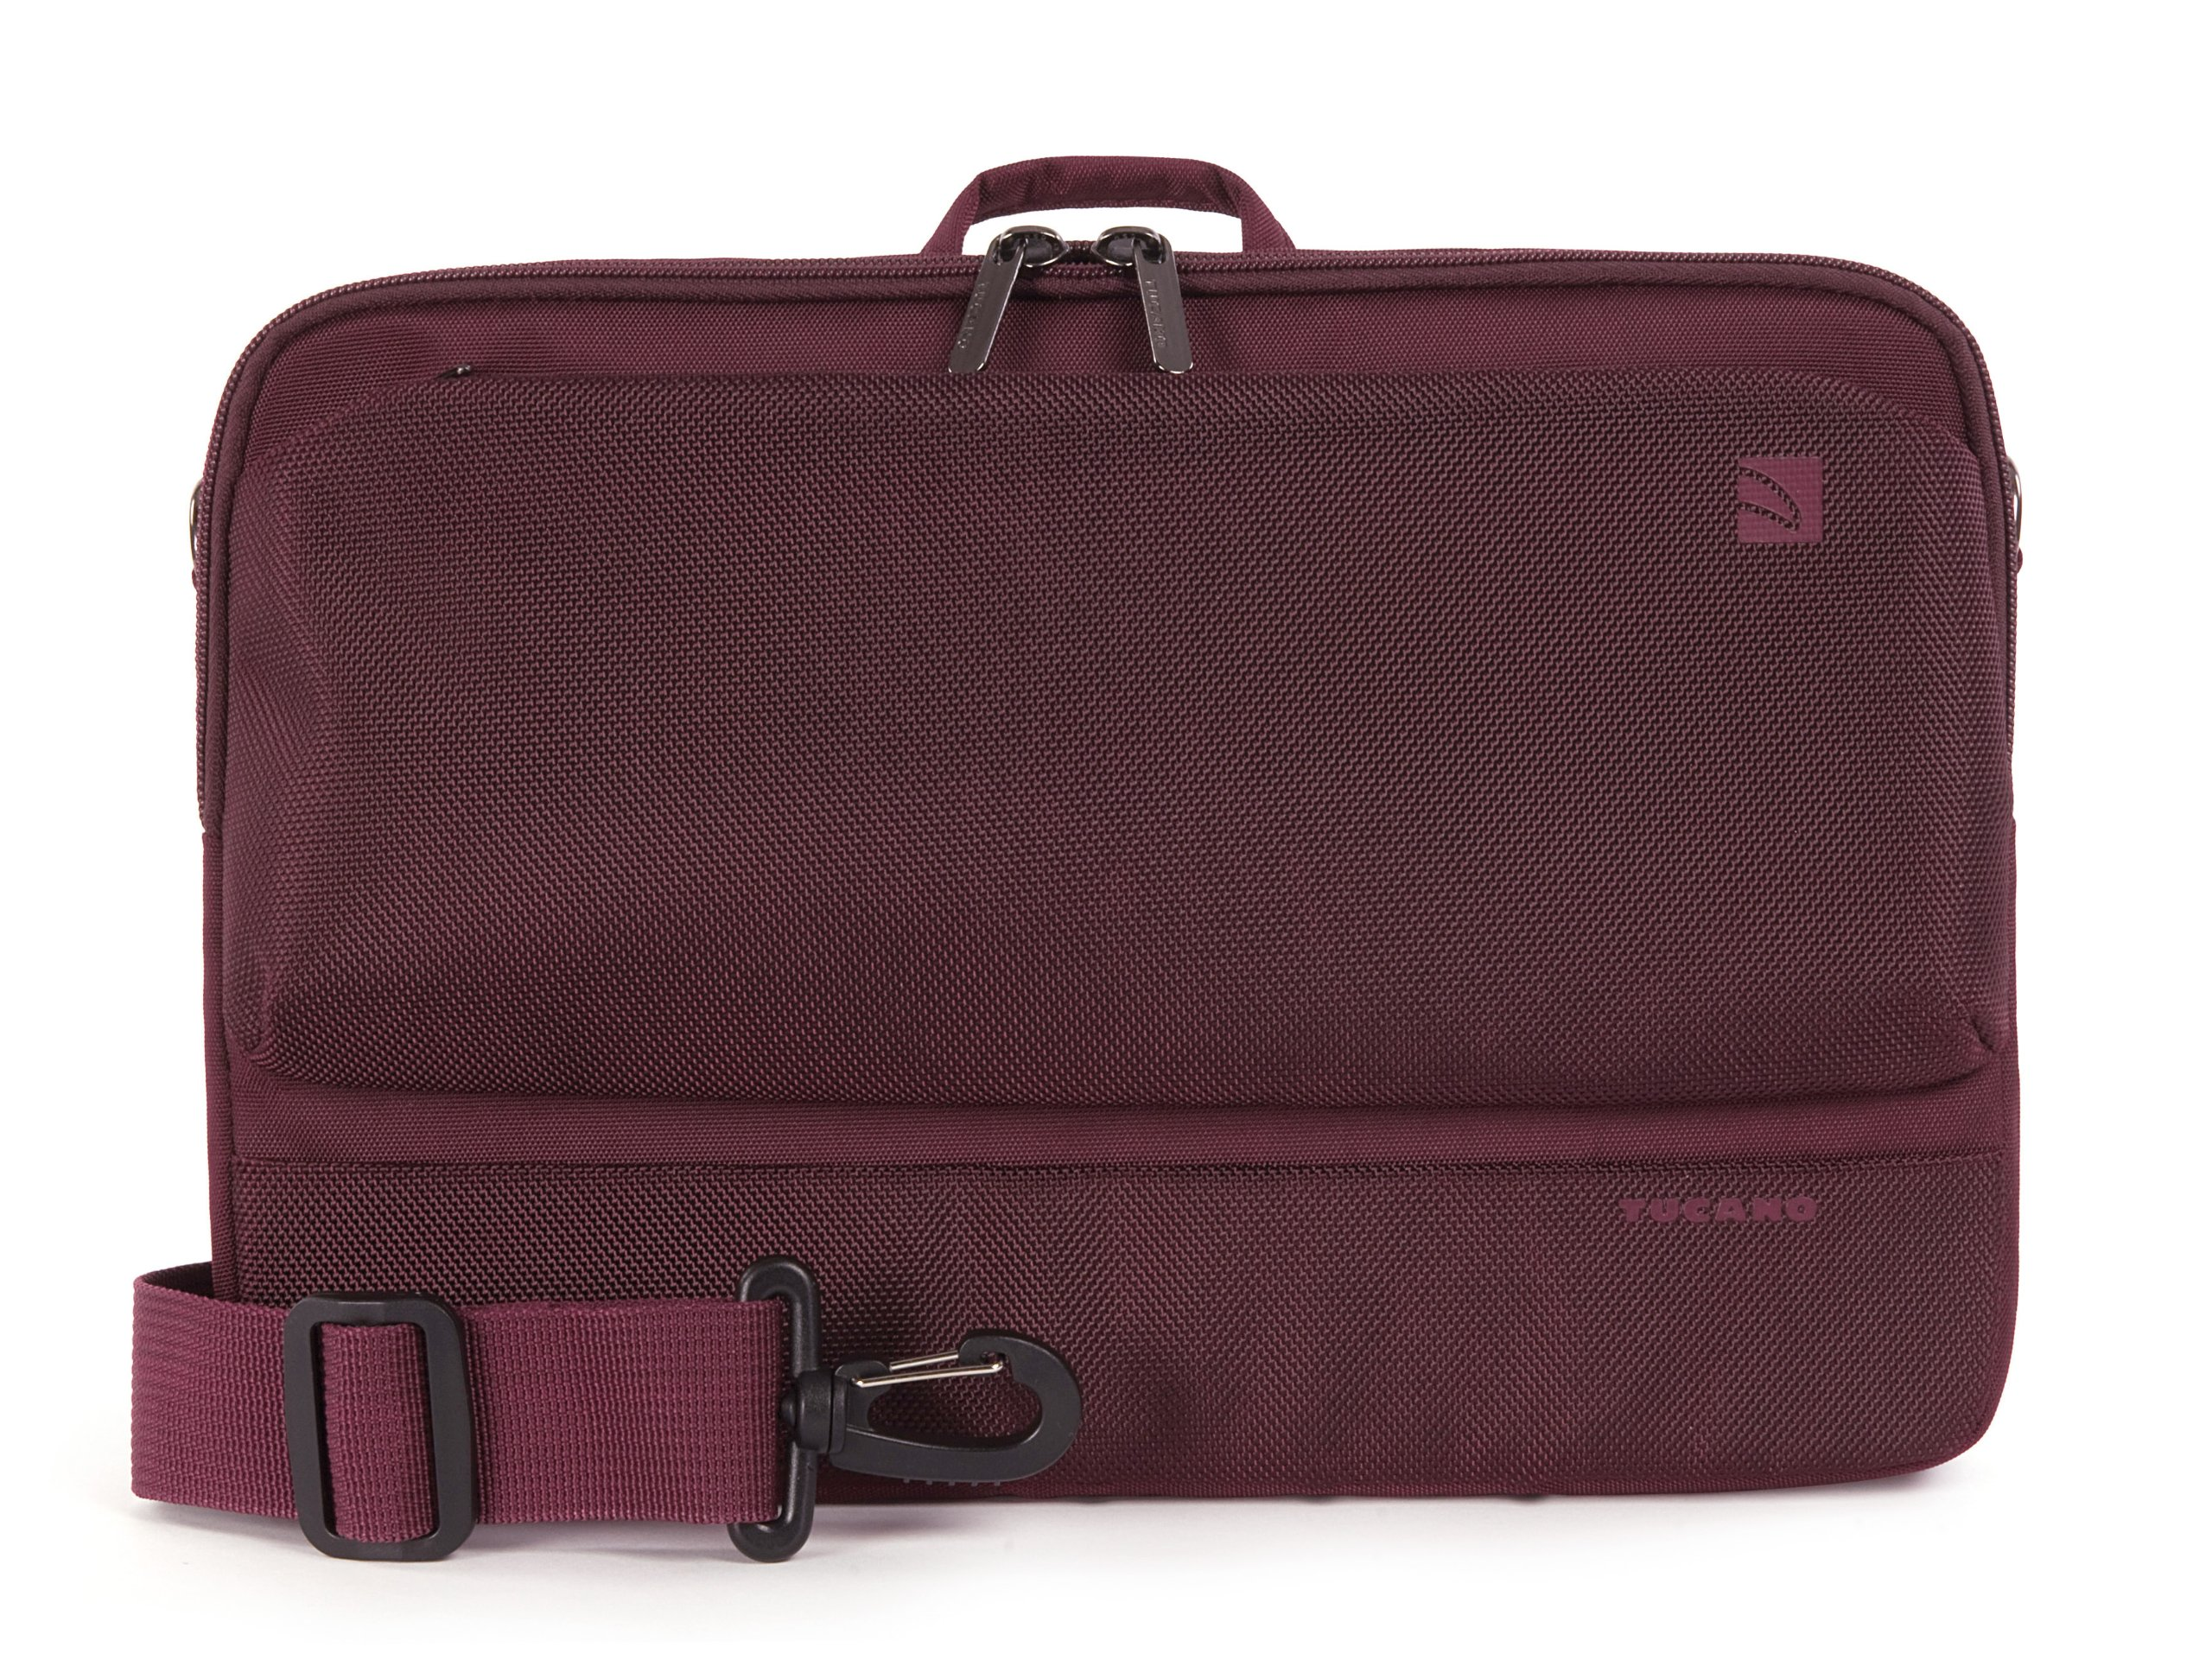 TUCANO BDR11-BX Laptop Computer Bags & Cases